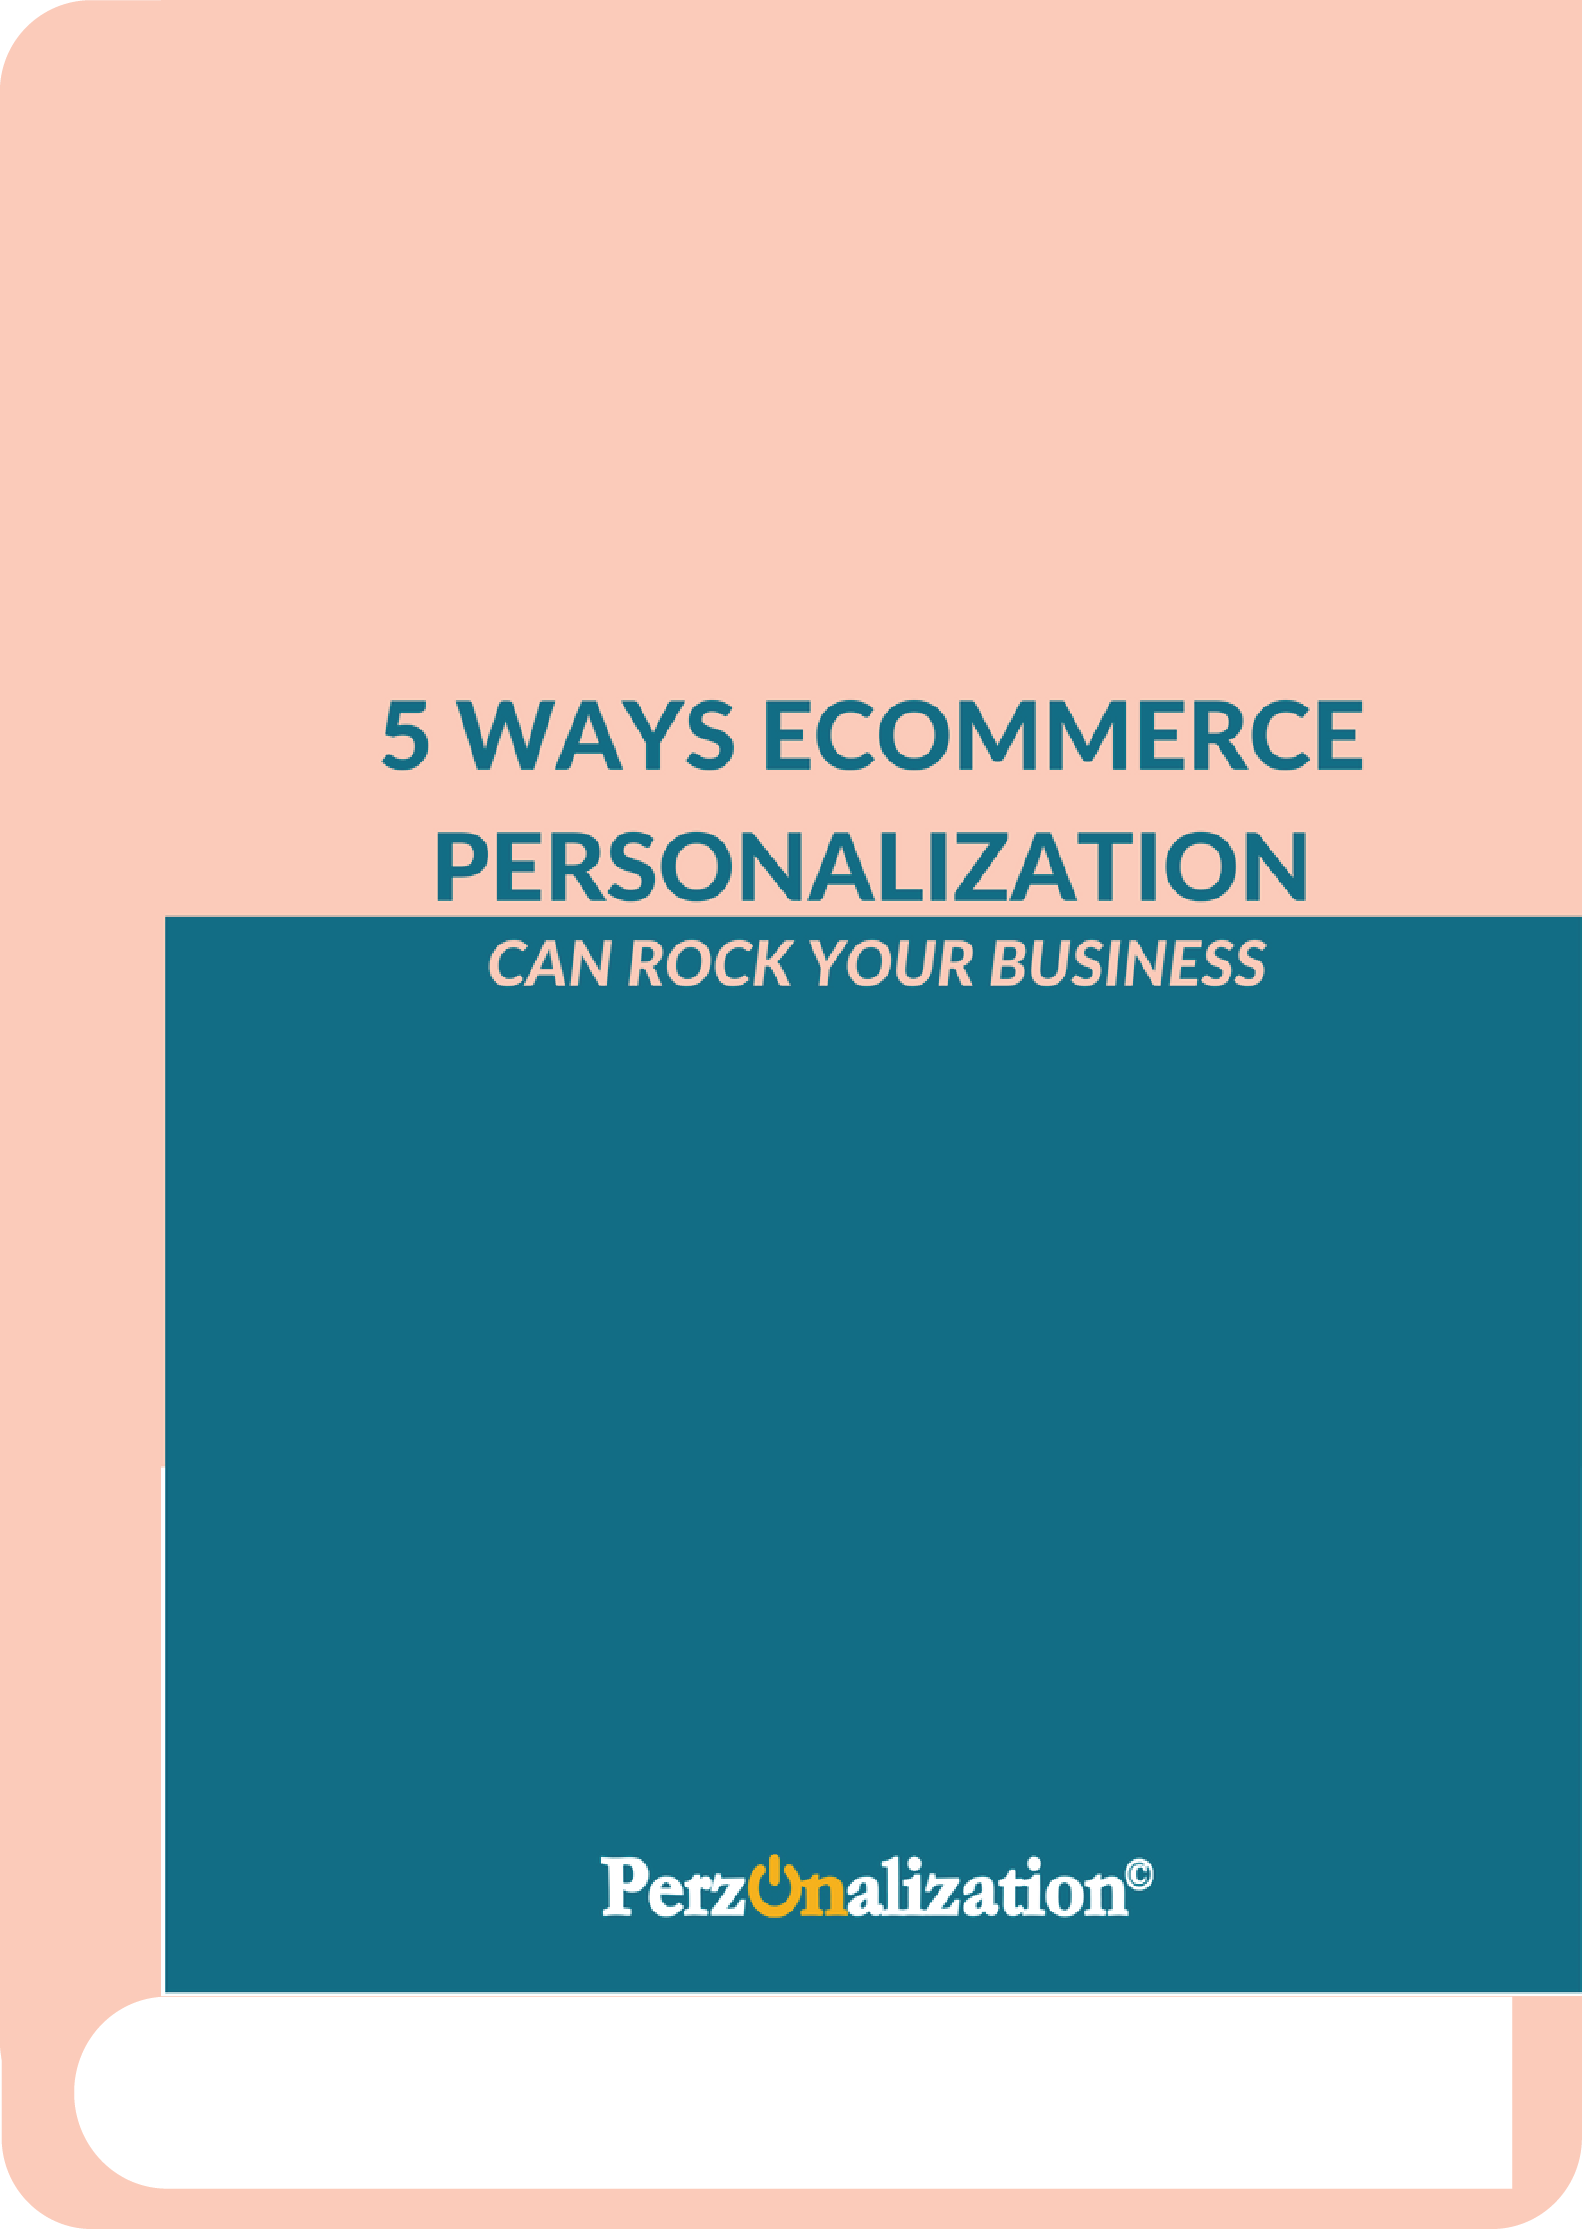 It is possible to create a rich and more relevant experience that will drive conversions and business outcomes via predictive personalization. In this eBook, find out how an online retail business can benefit from eCommerce personalization.